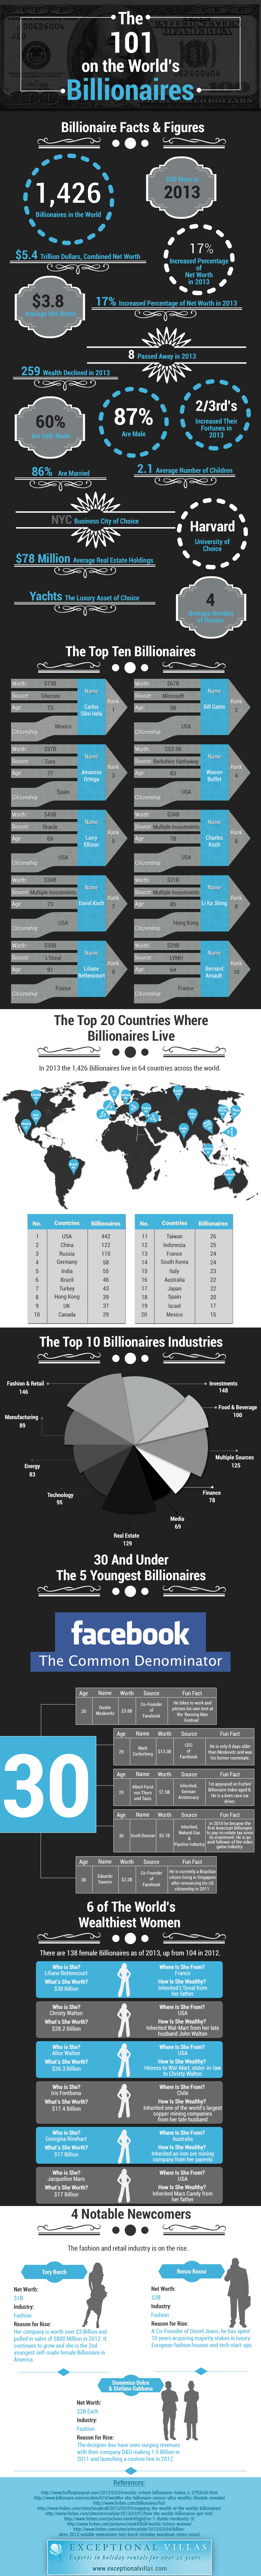 The 101 on the World's Billionaires - An Infographic